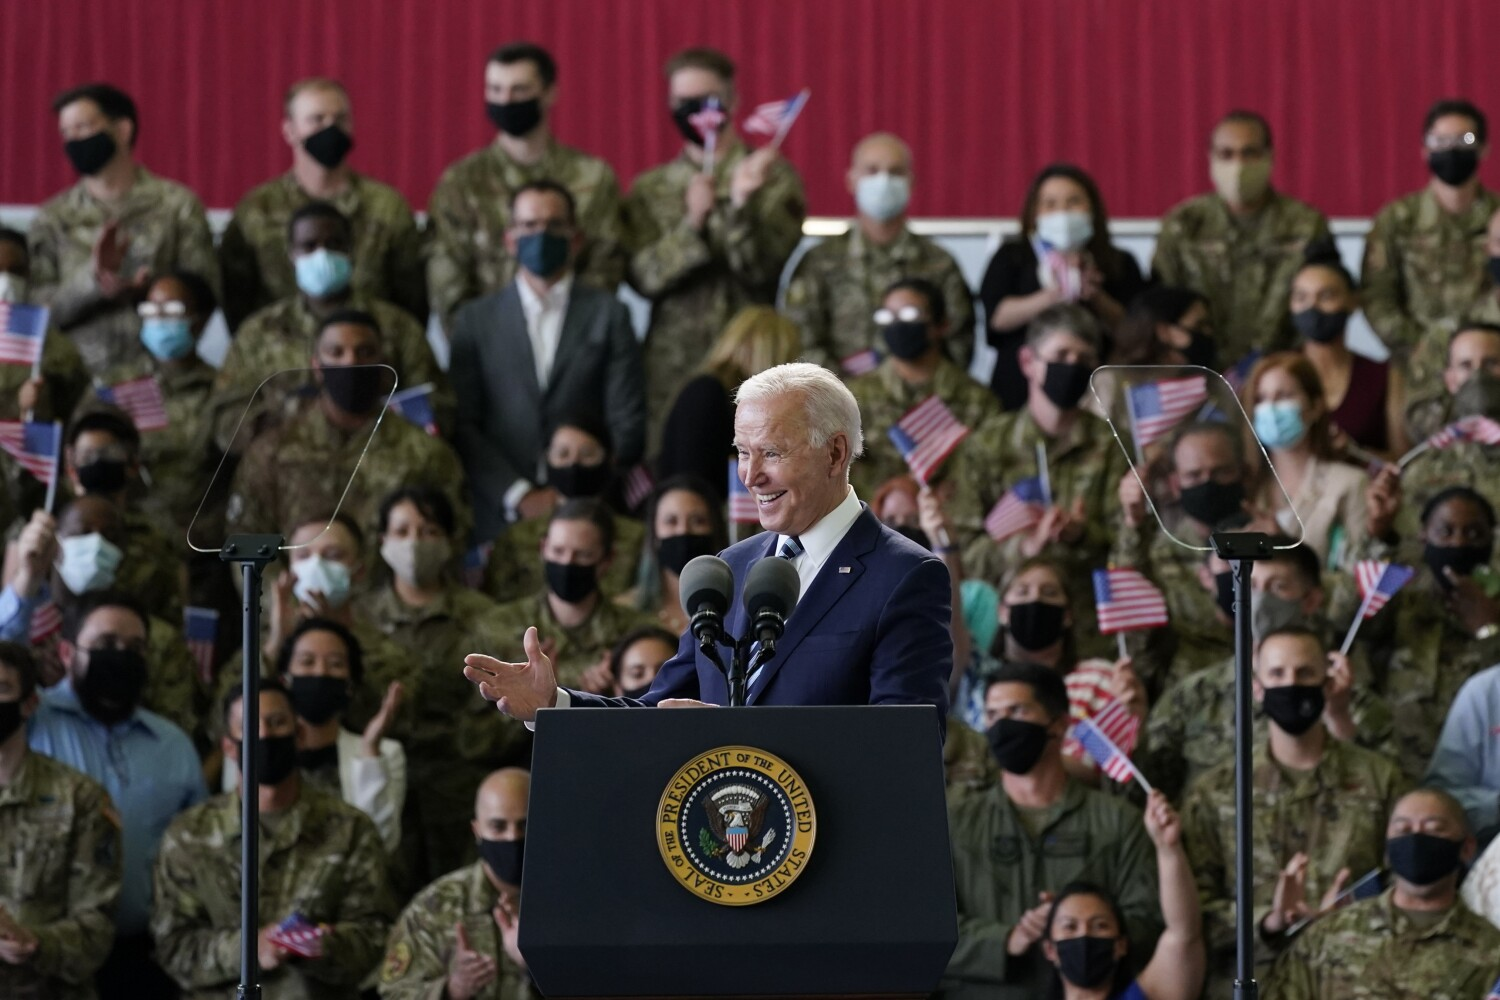 Biden to announce U.S. will donate 500 million COVID-19 vaccine doses to poor nations